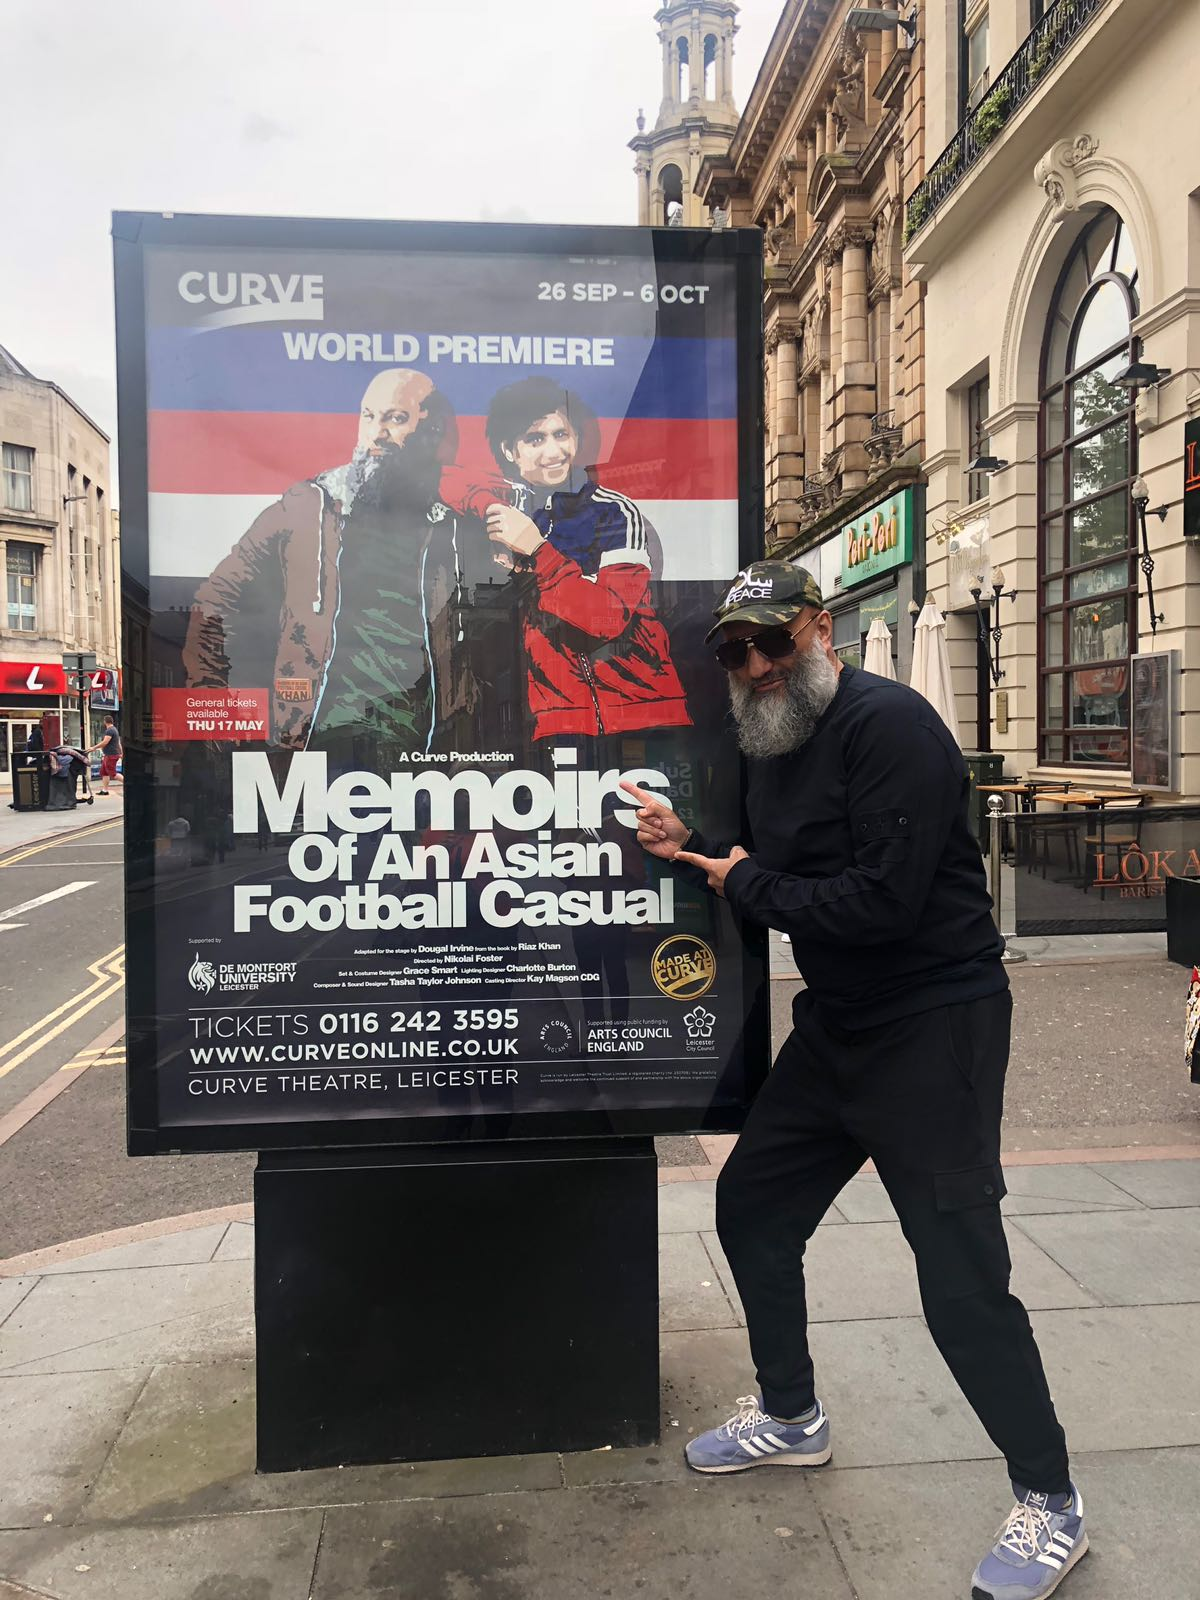 Khan Memoirs Of An Asian Football Casual